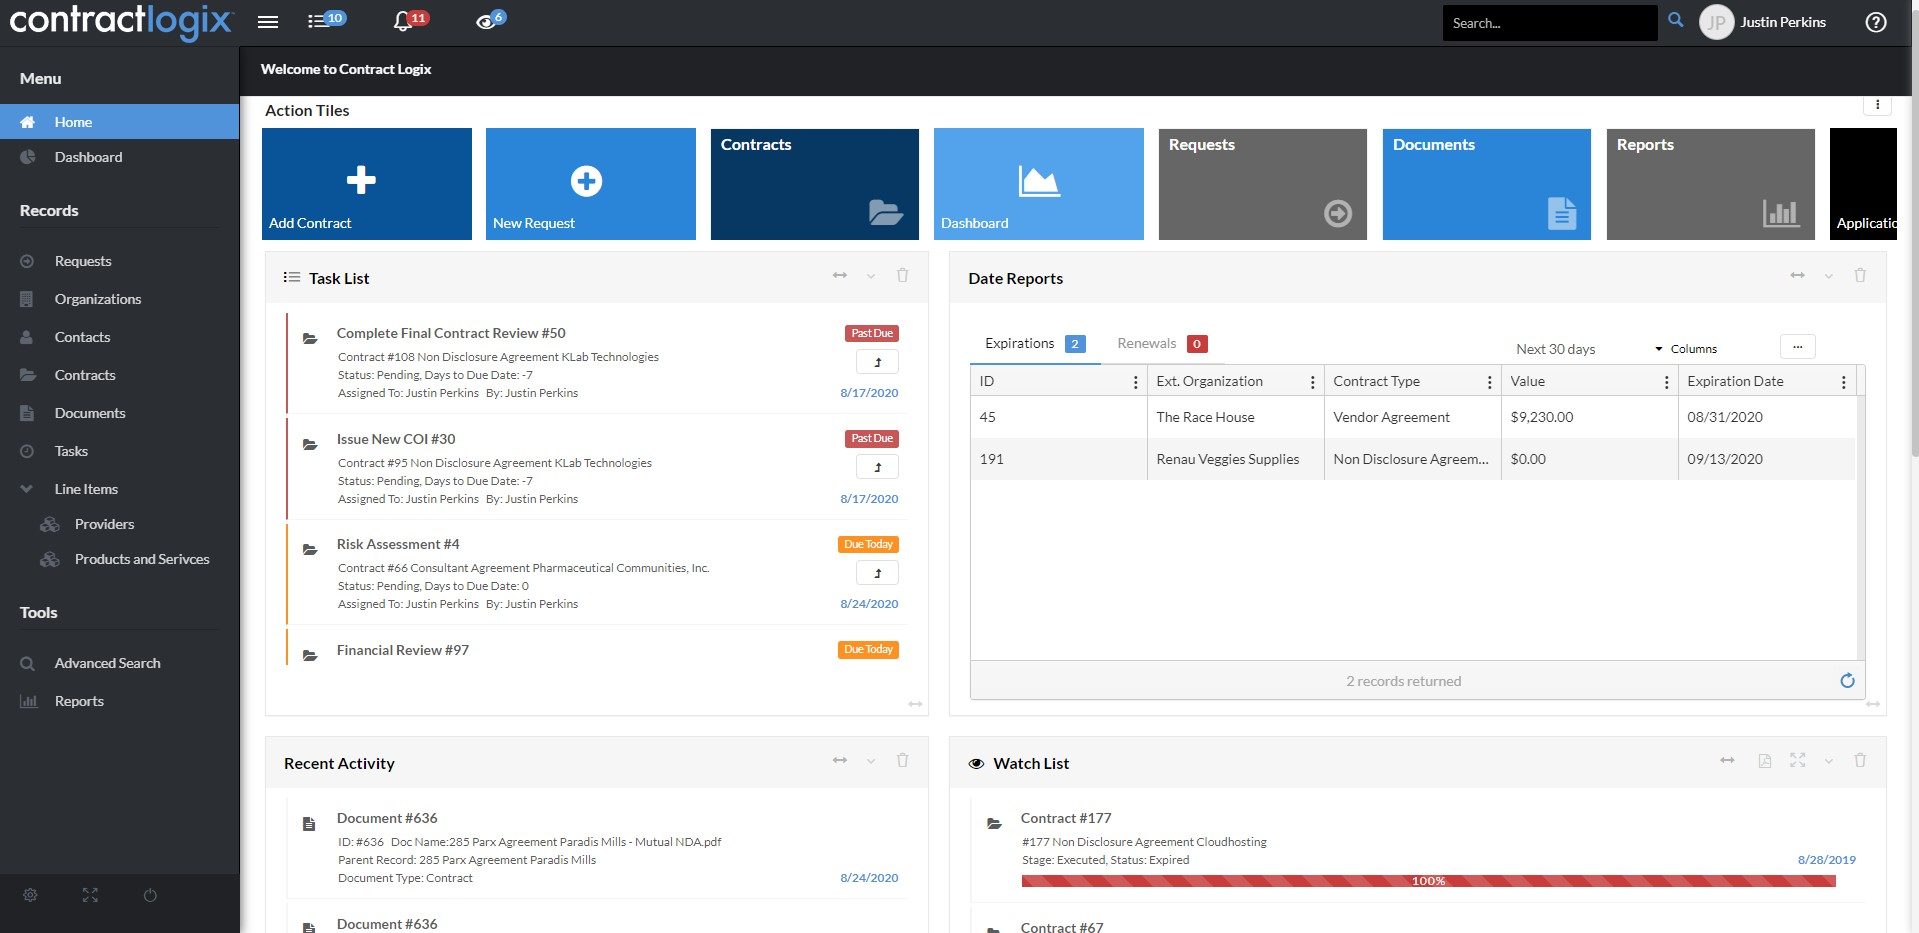 Dashboard in Contract Logix